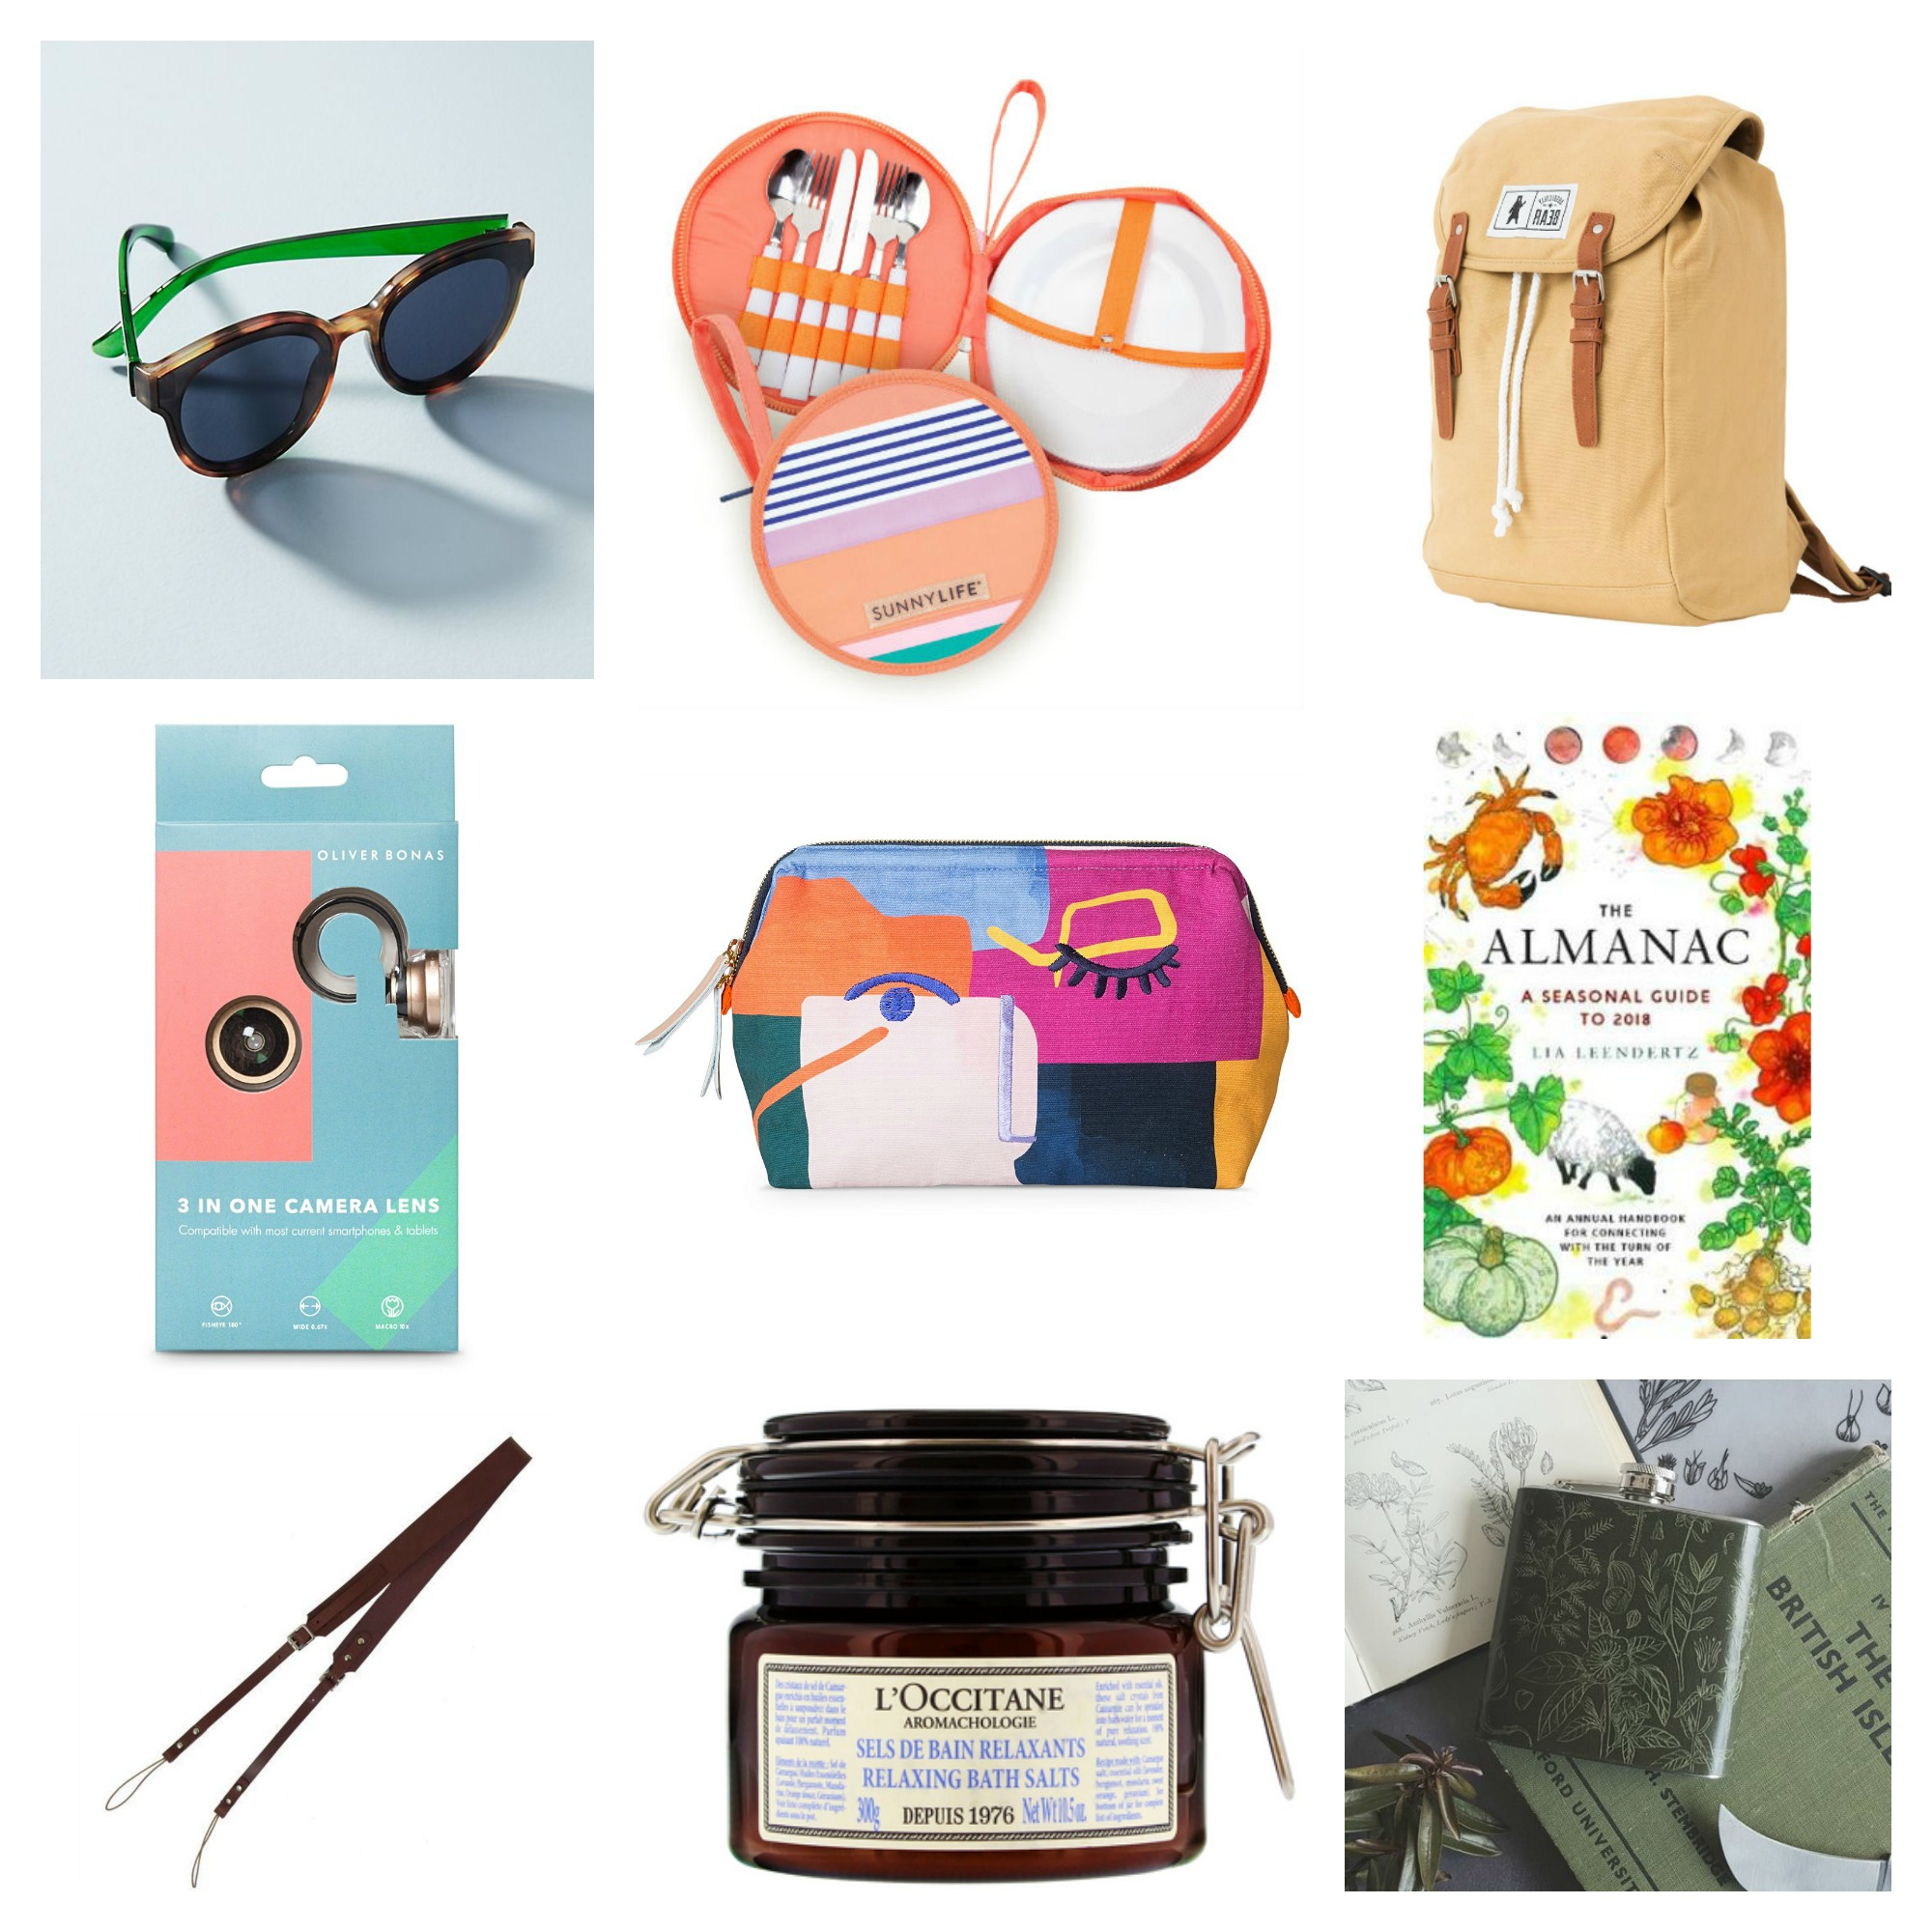 Stylists gifts for outdoors